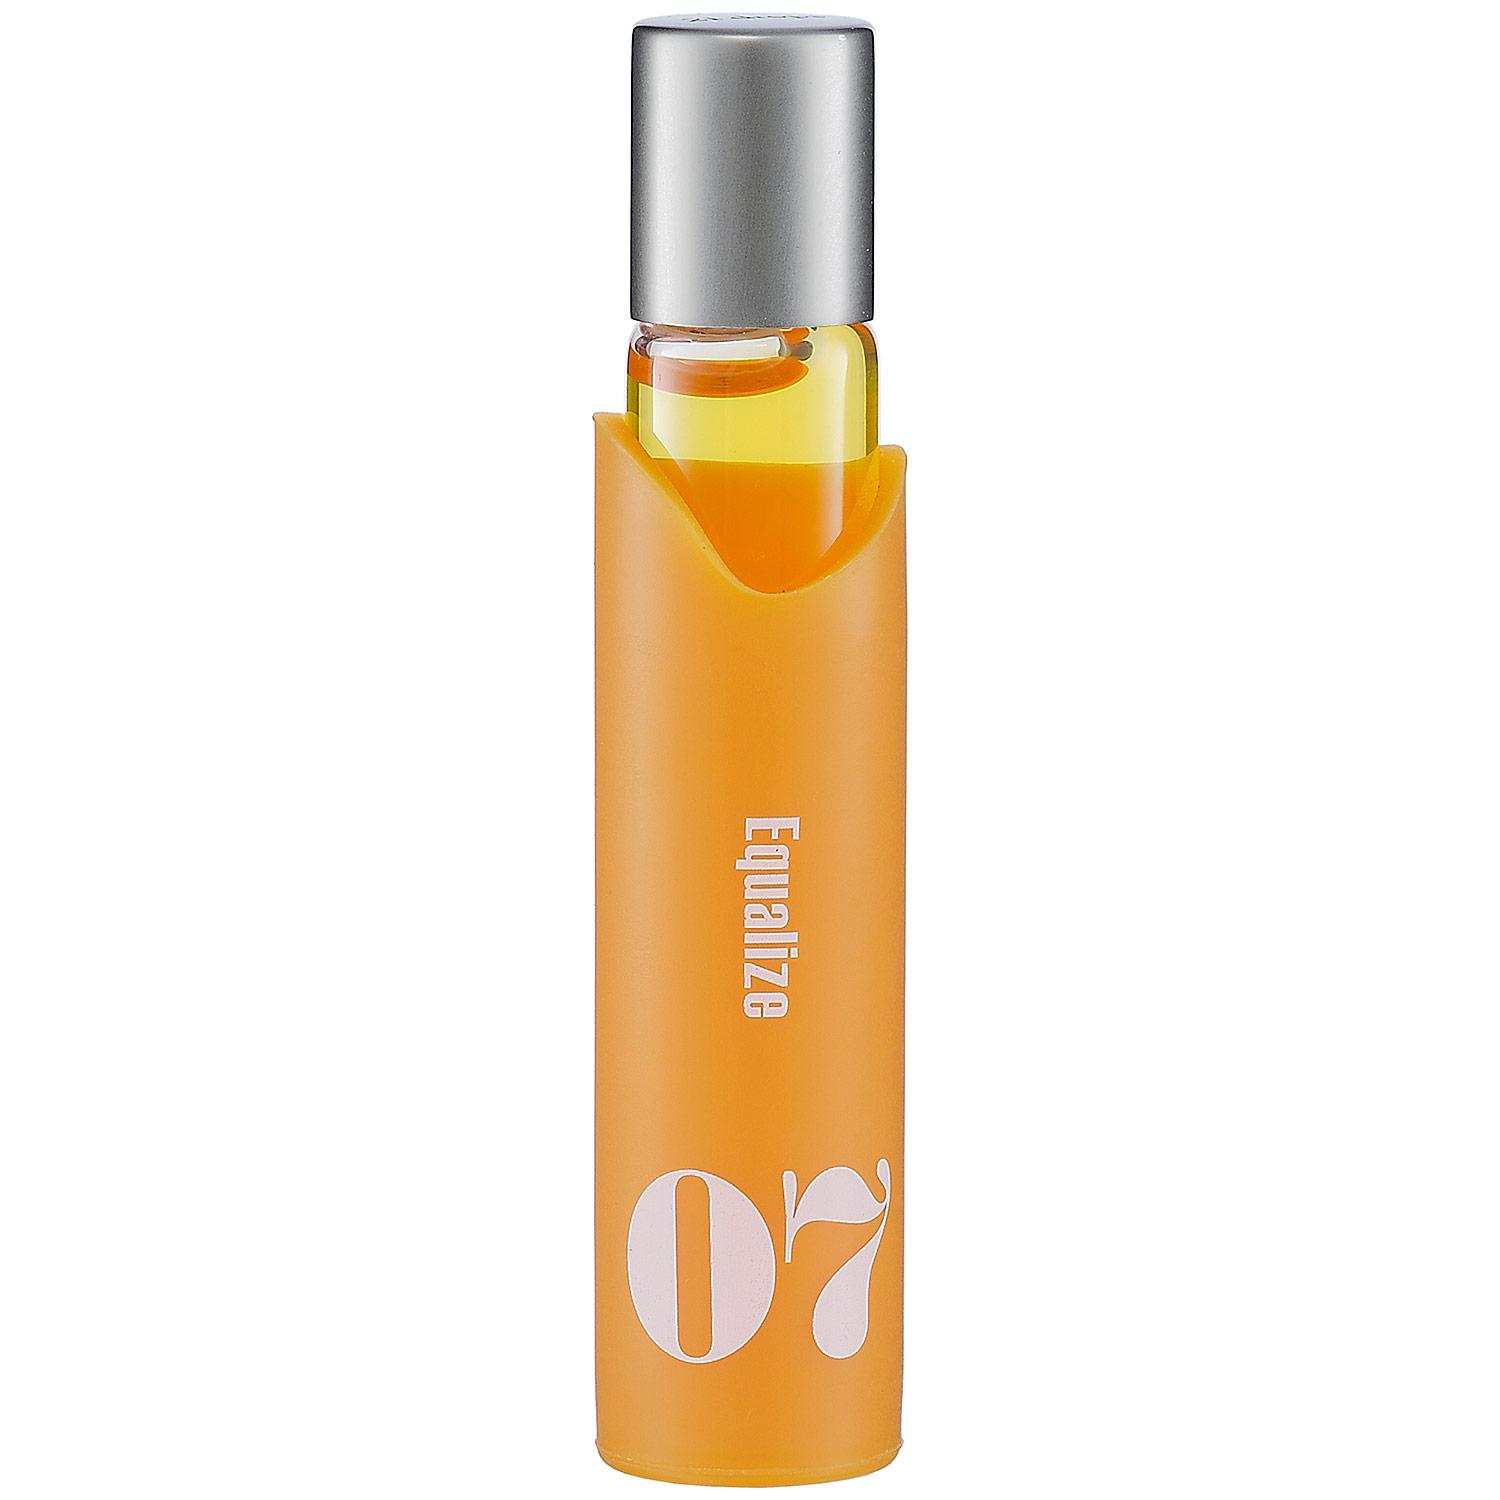 07 Equalize Essential Oil Rollerball